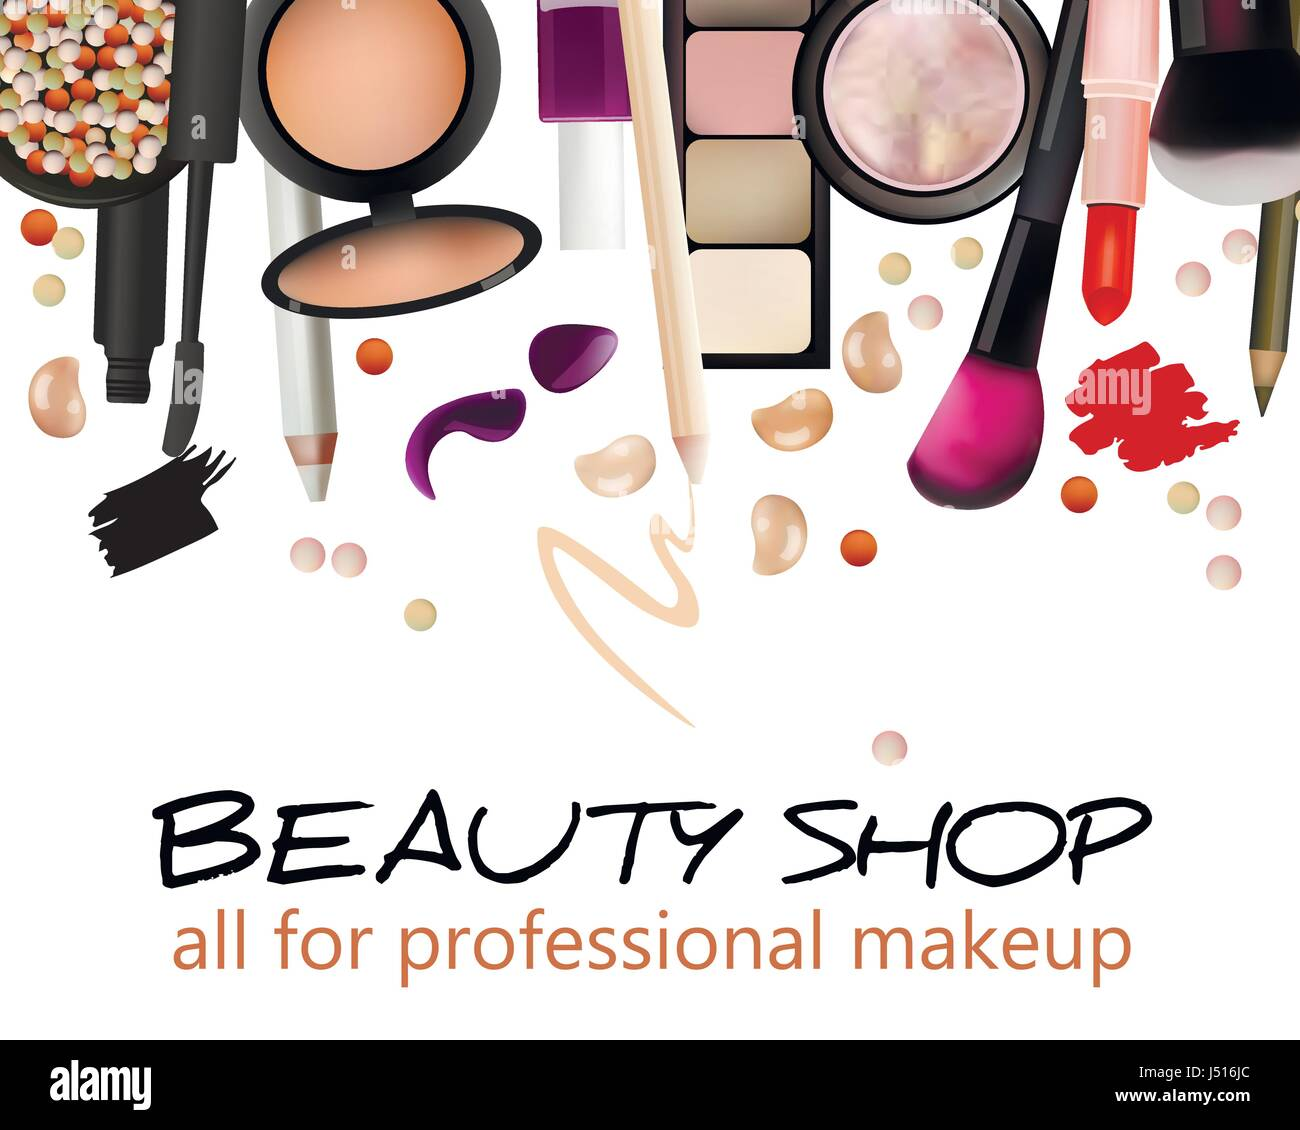 Beauty shop business card design. Banner. Cosmetics Stock Vector Art ...